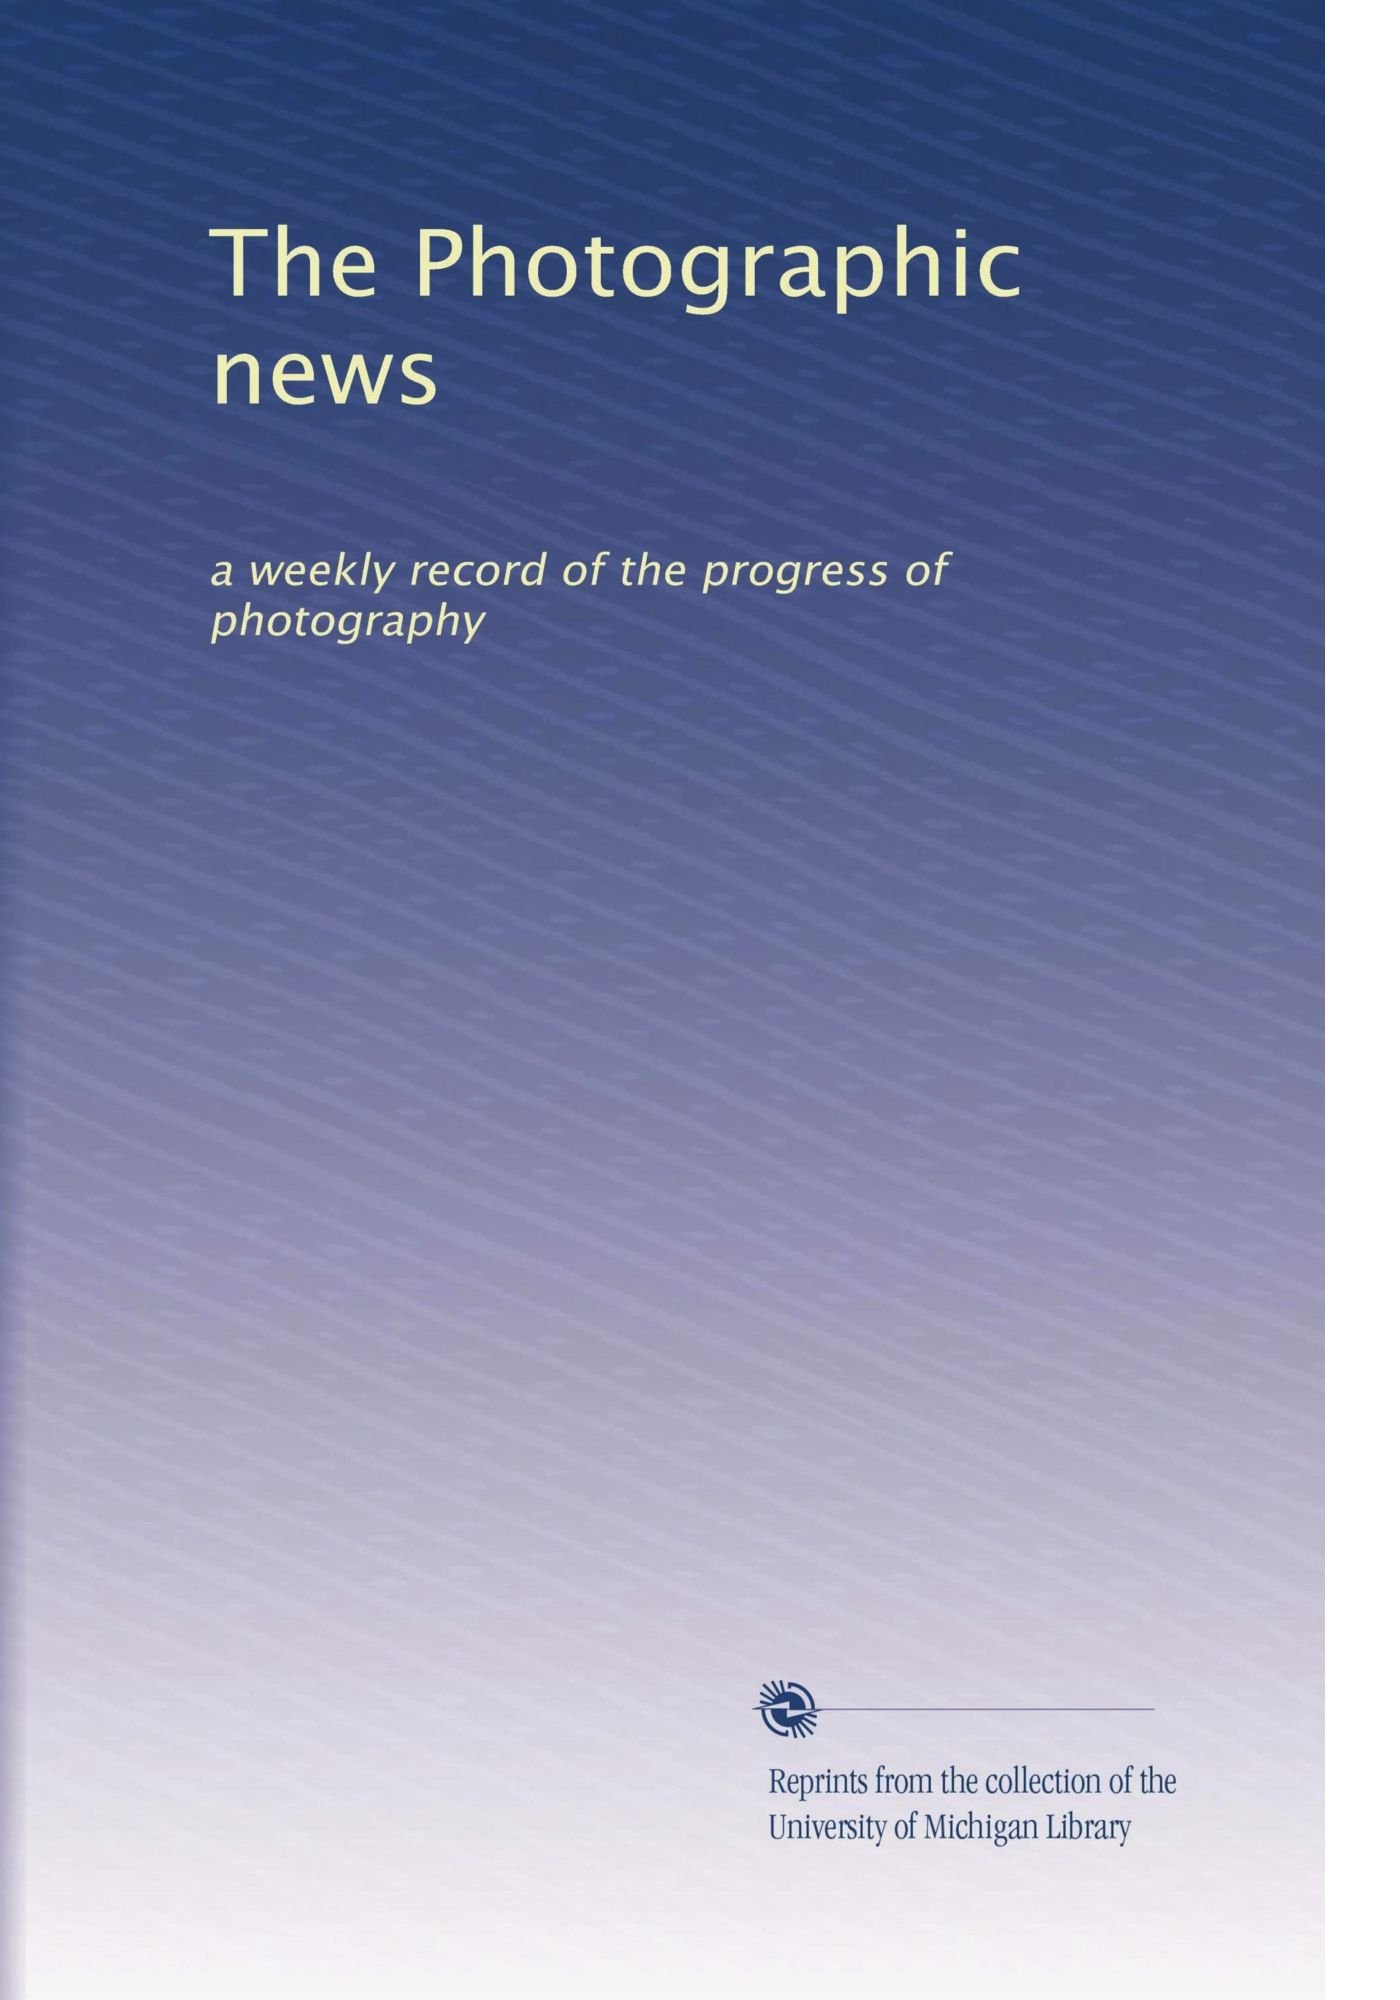 The Photographic news: a weekly record of the progress of photography (Volume 2) PDF